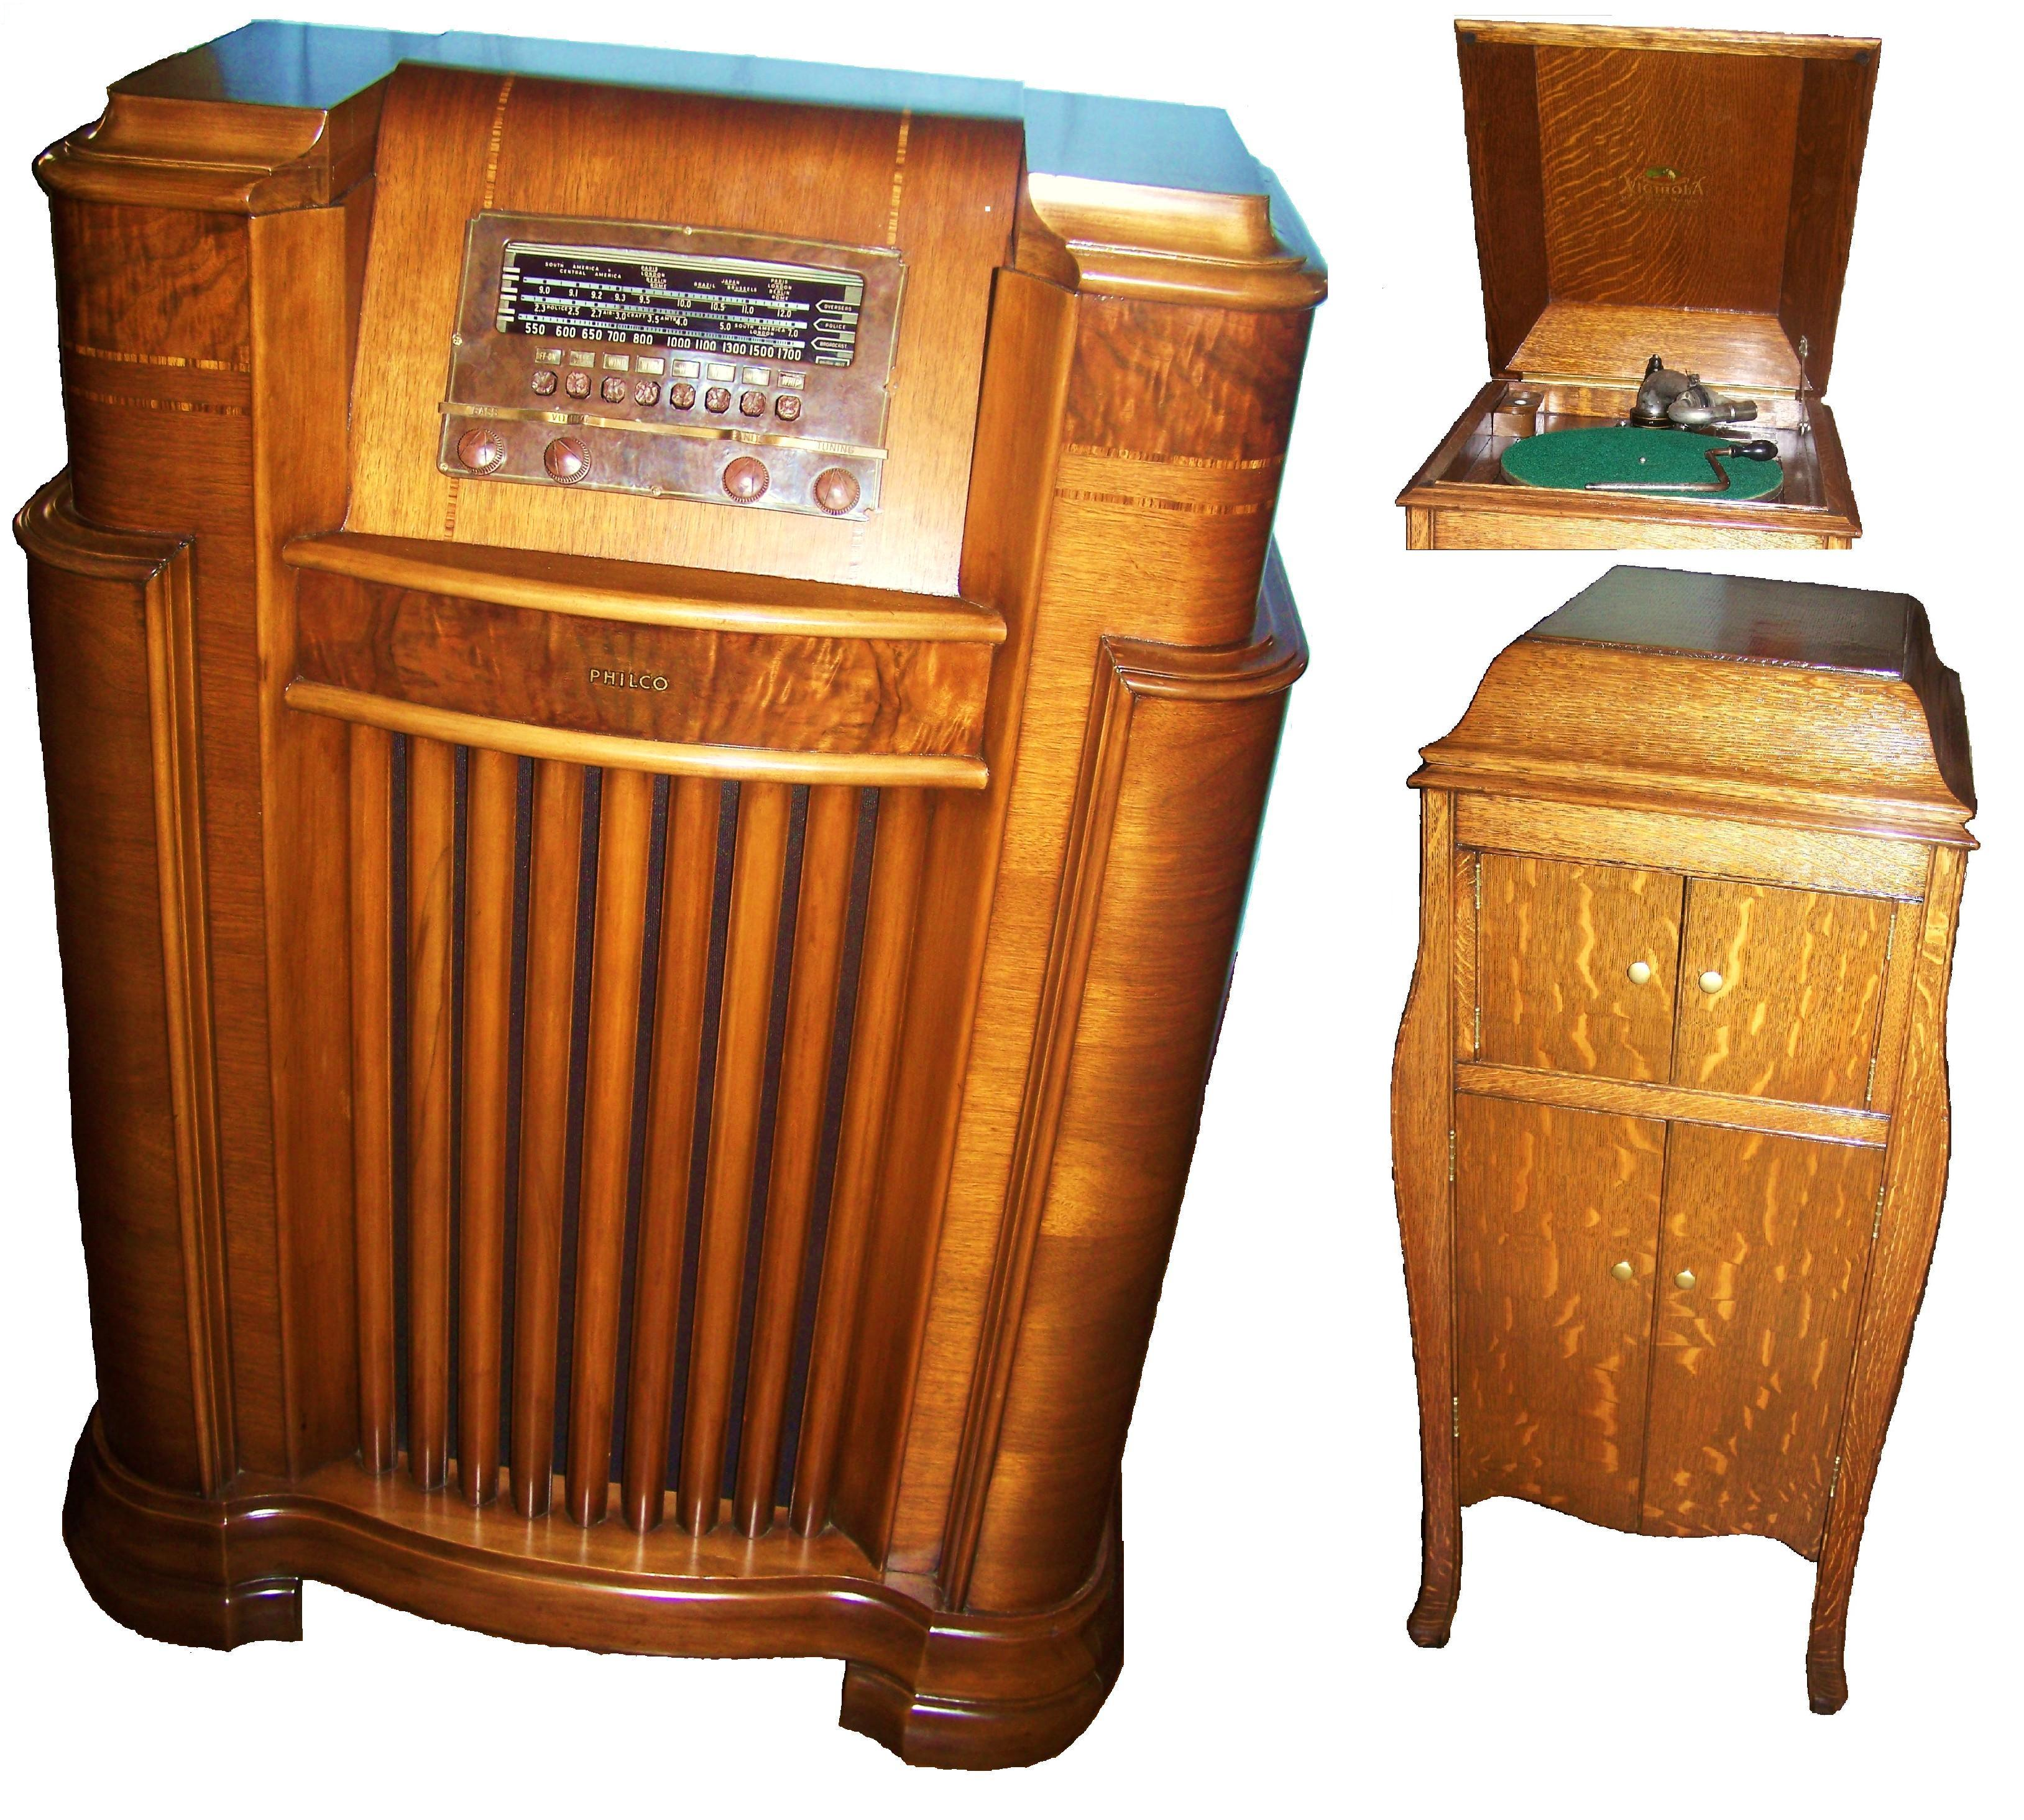 Radio & Victrola This Radio Cabinet And Victrola Were Water Damaged From A Caved In Ceiling